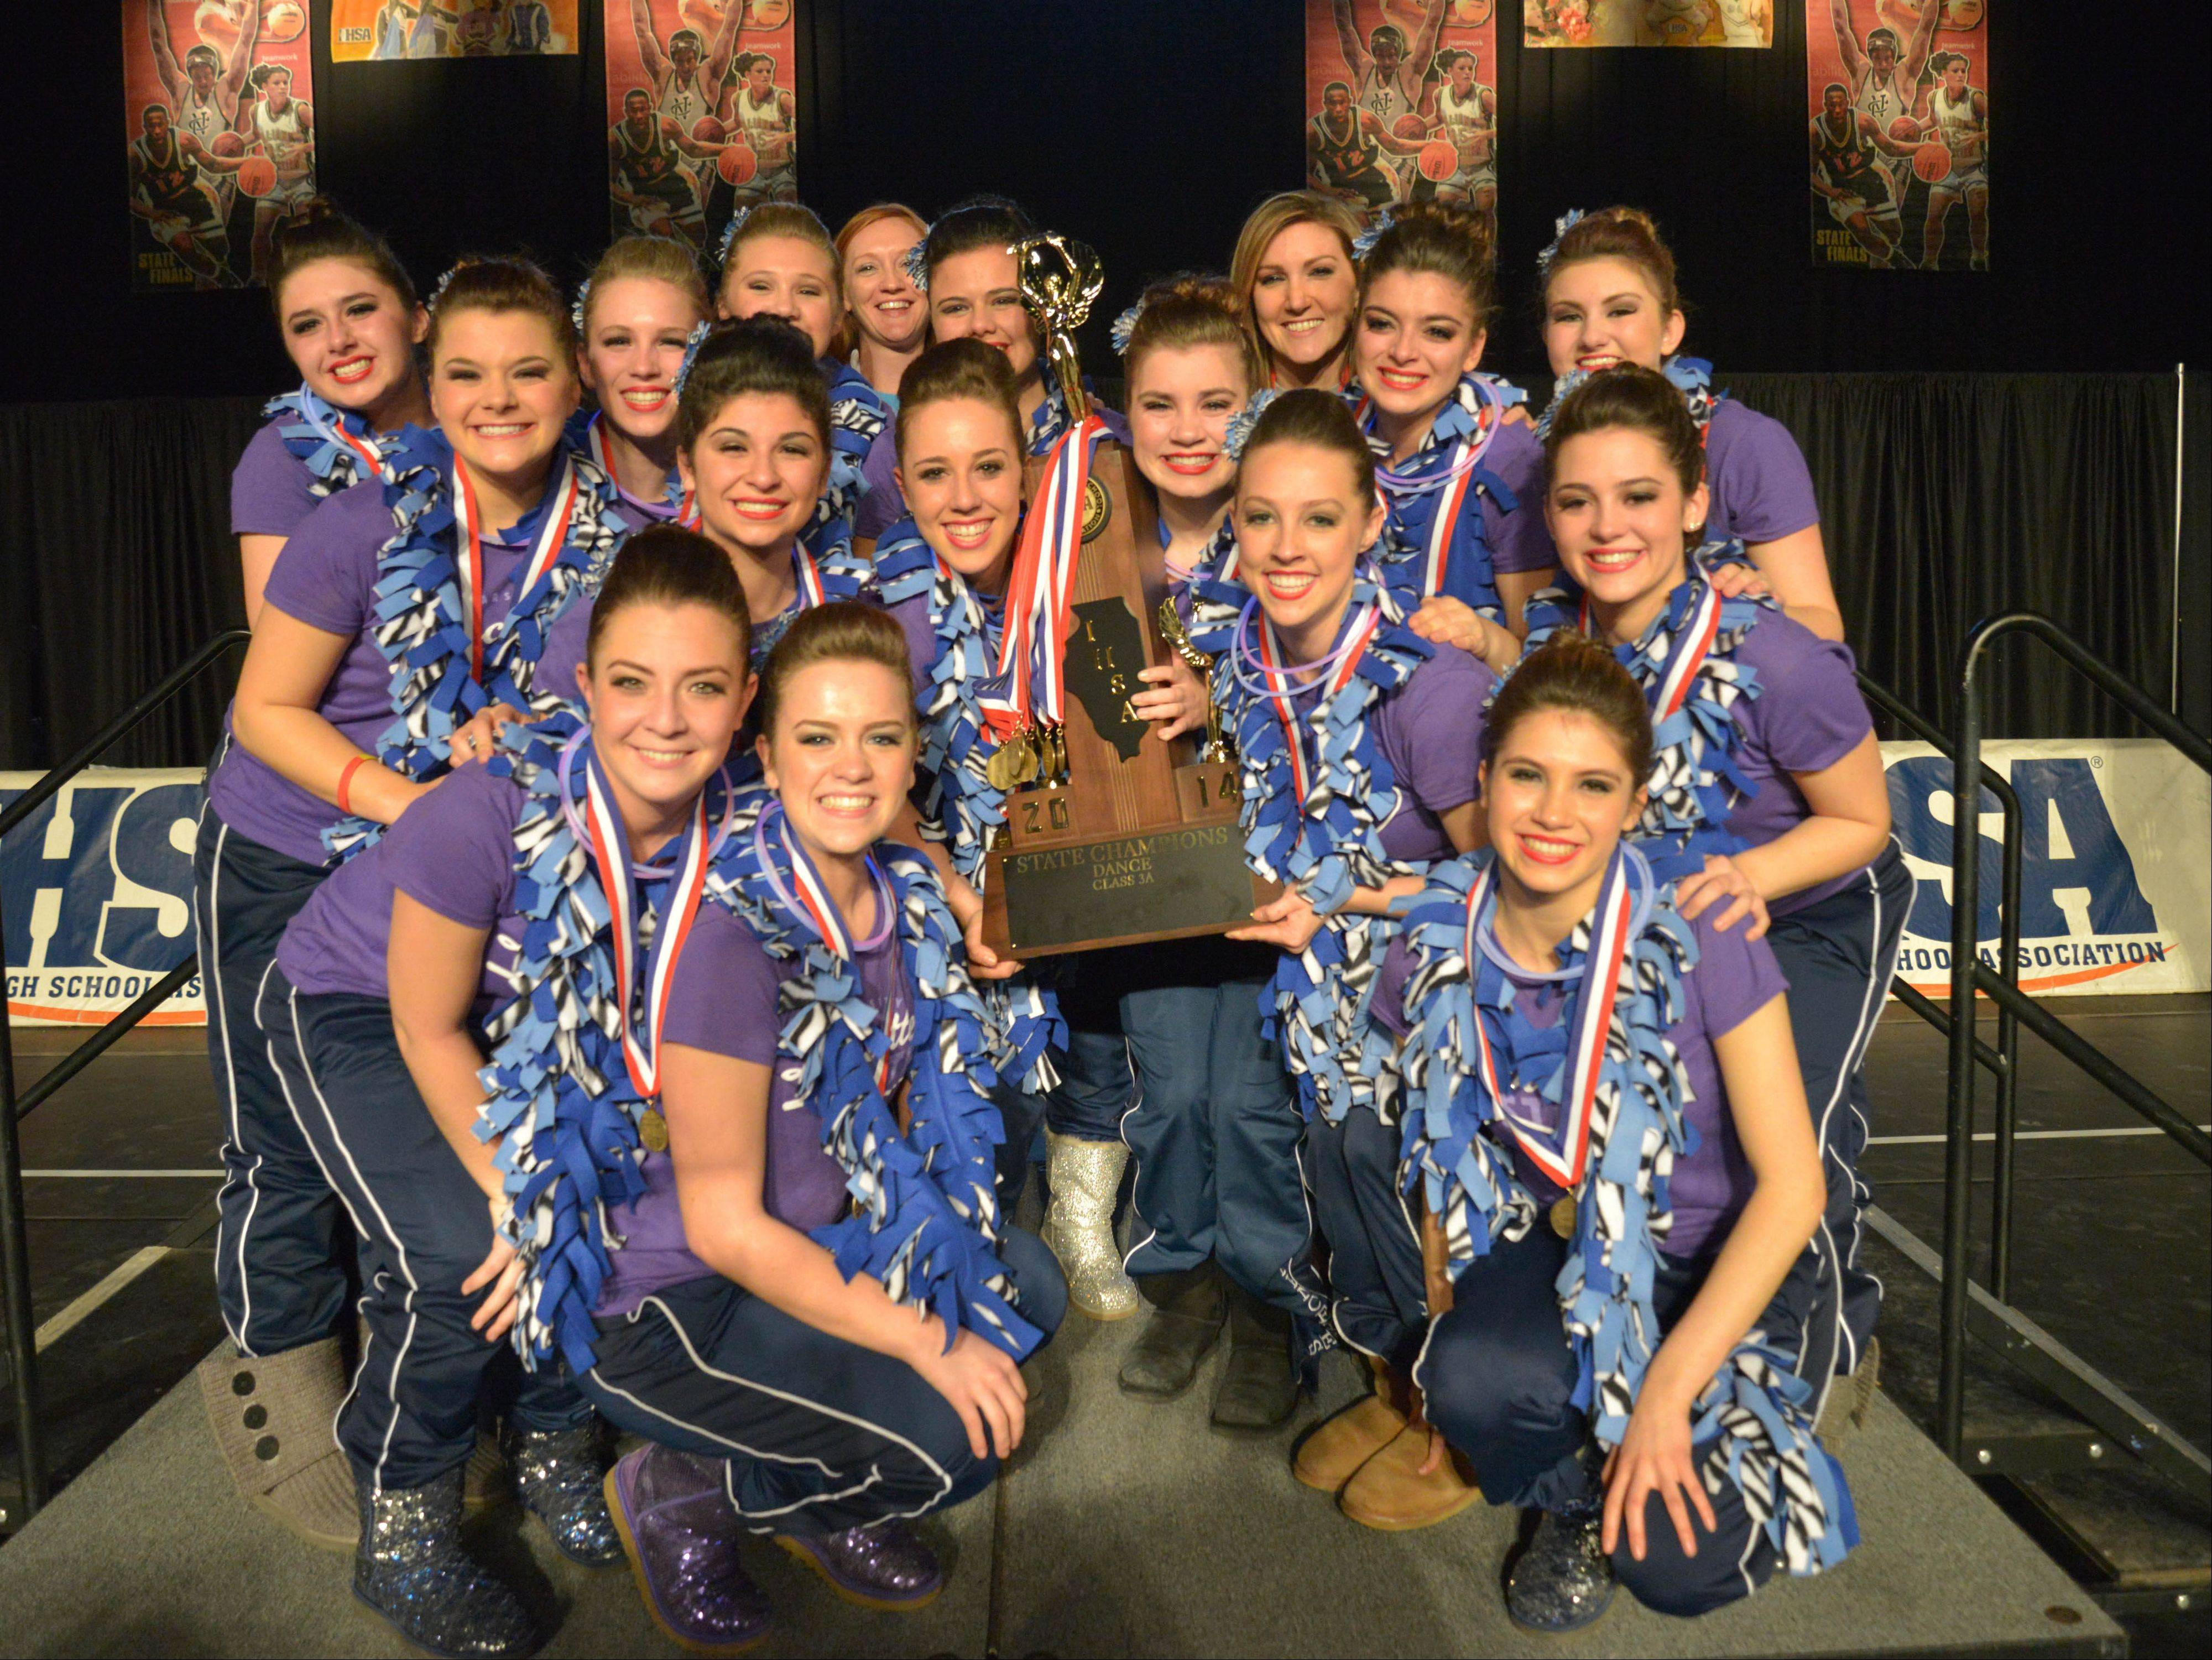 Lake Park High School won first place in the 3A IHSA Dance State Final at U.S. Cellular Coliseum in Bloomington Saturday. 90 teams vied for state champion at this event.